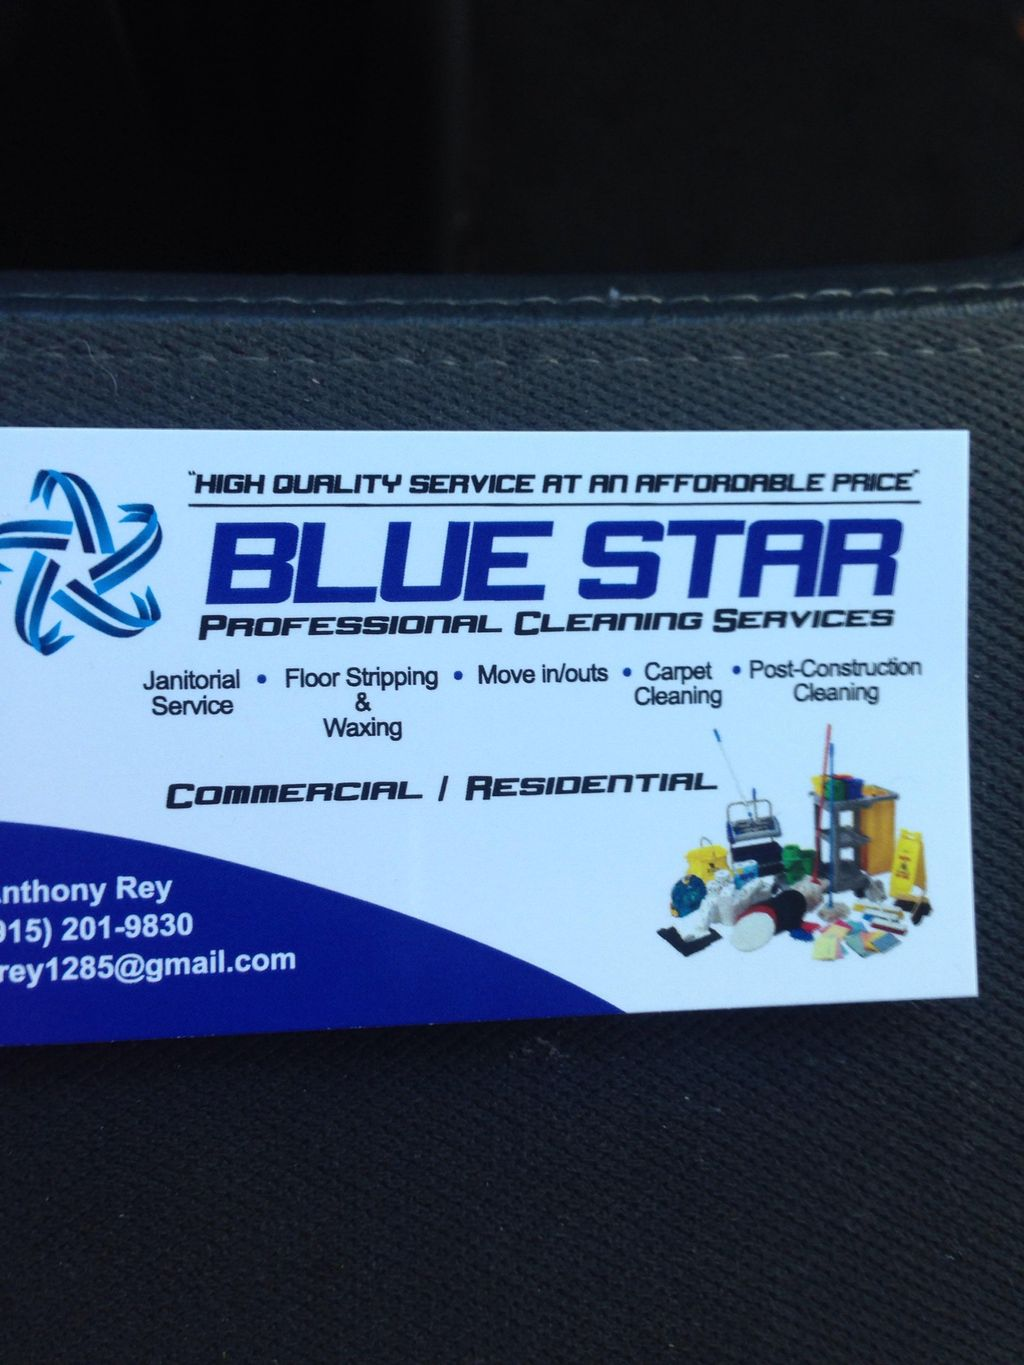 Blue Star Professional Cleaning Services